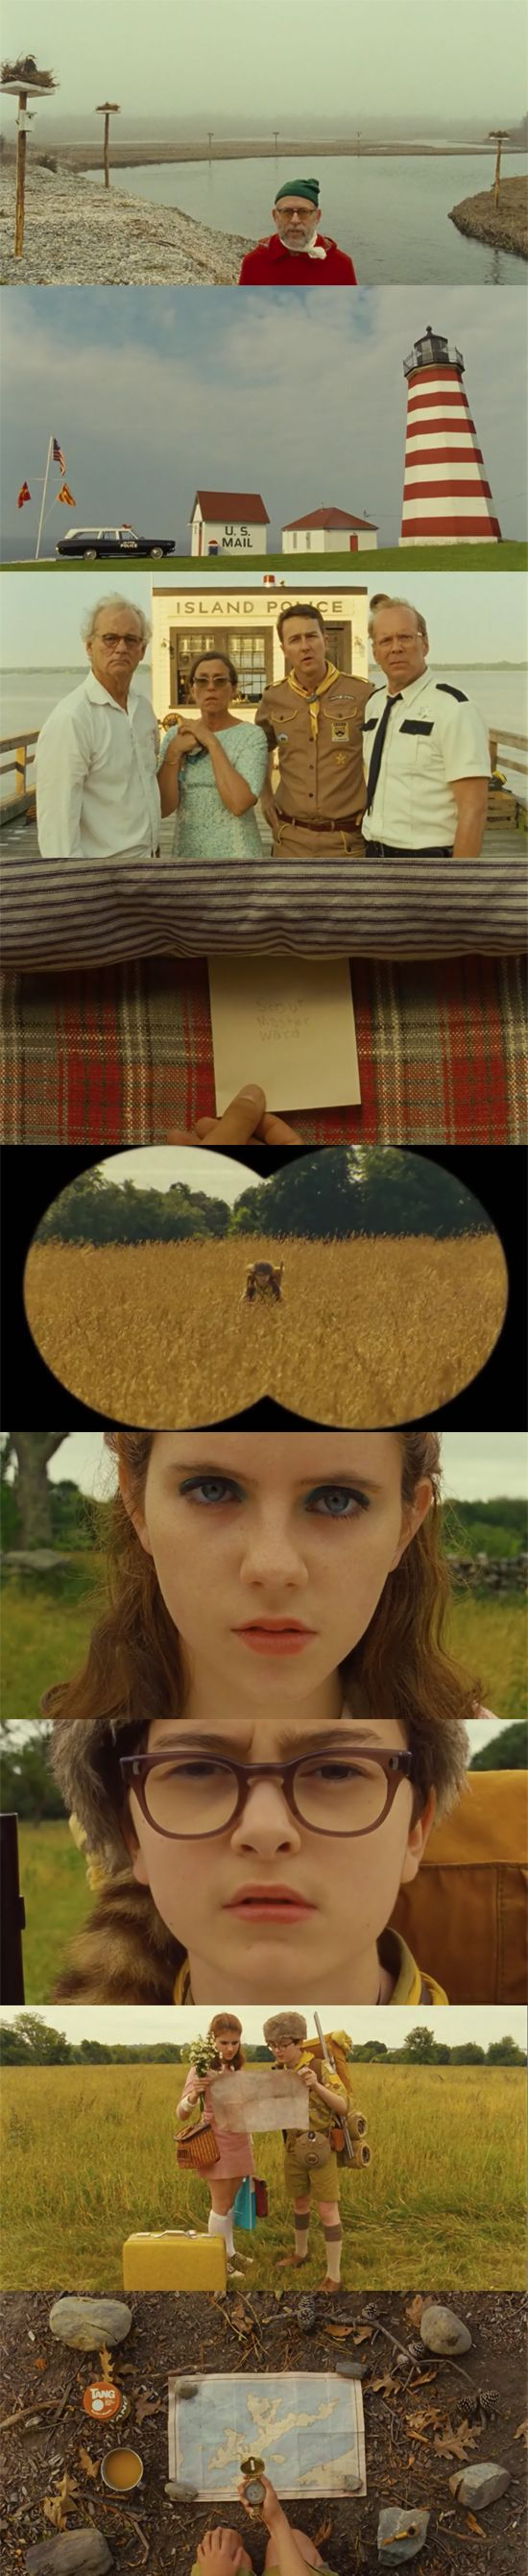 Moonrise Kingdom (2012) - Cinematography Robert Yeoman | Directed by Wes Anderson